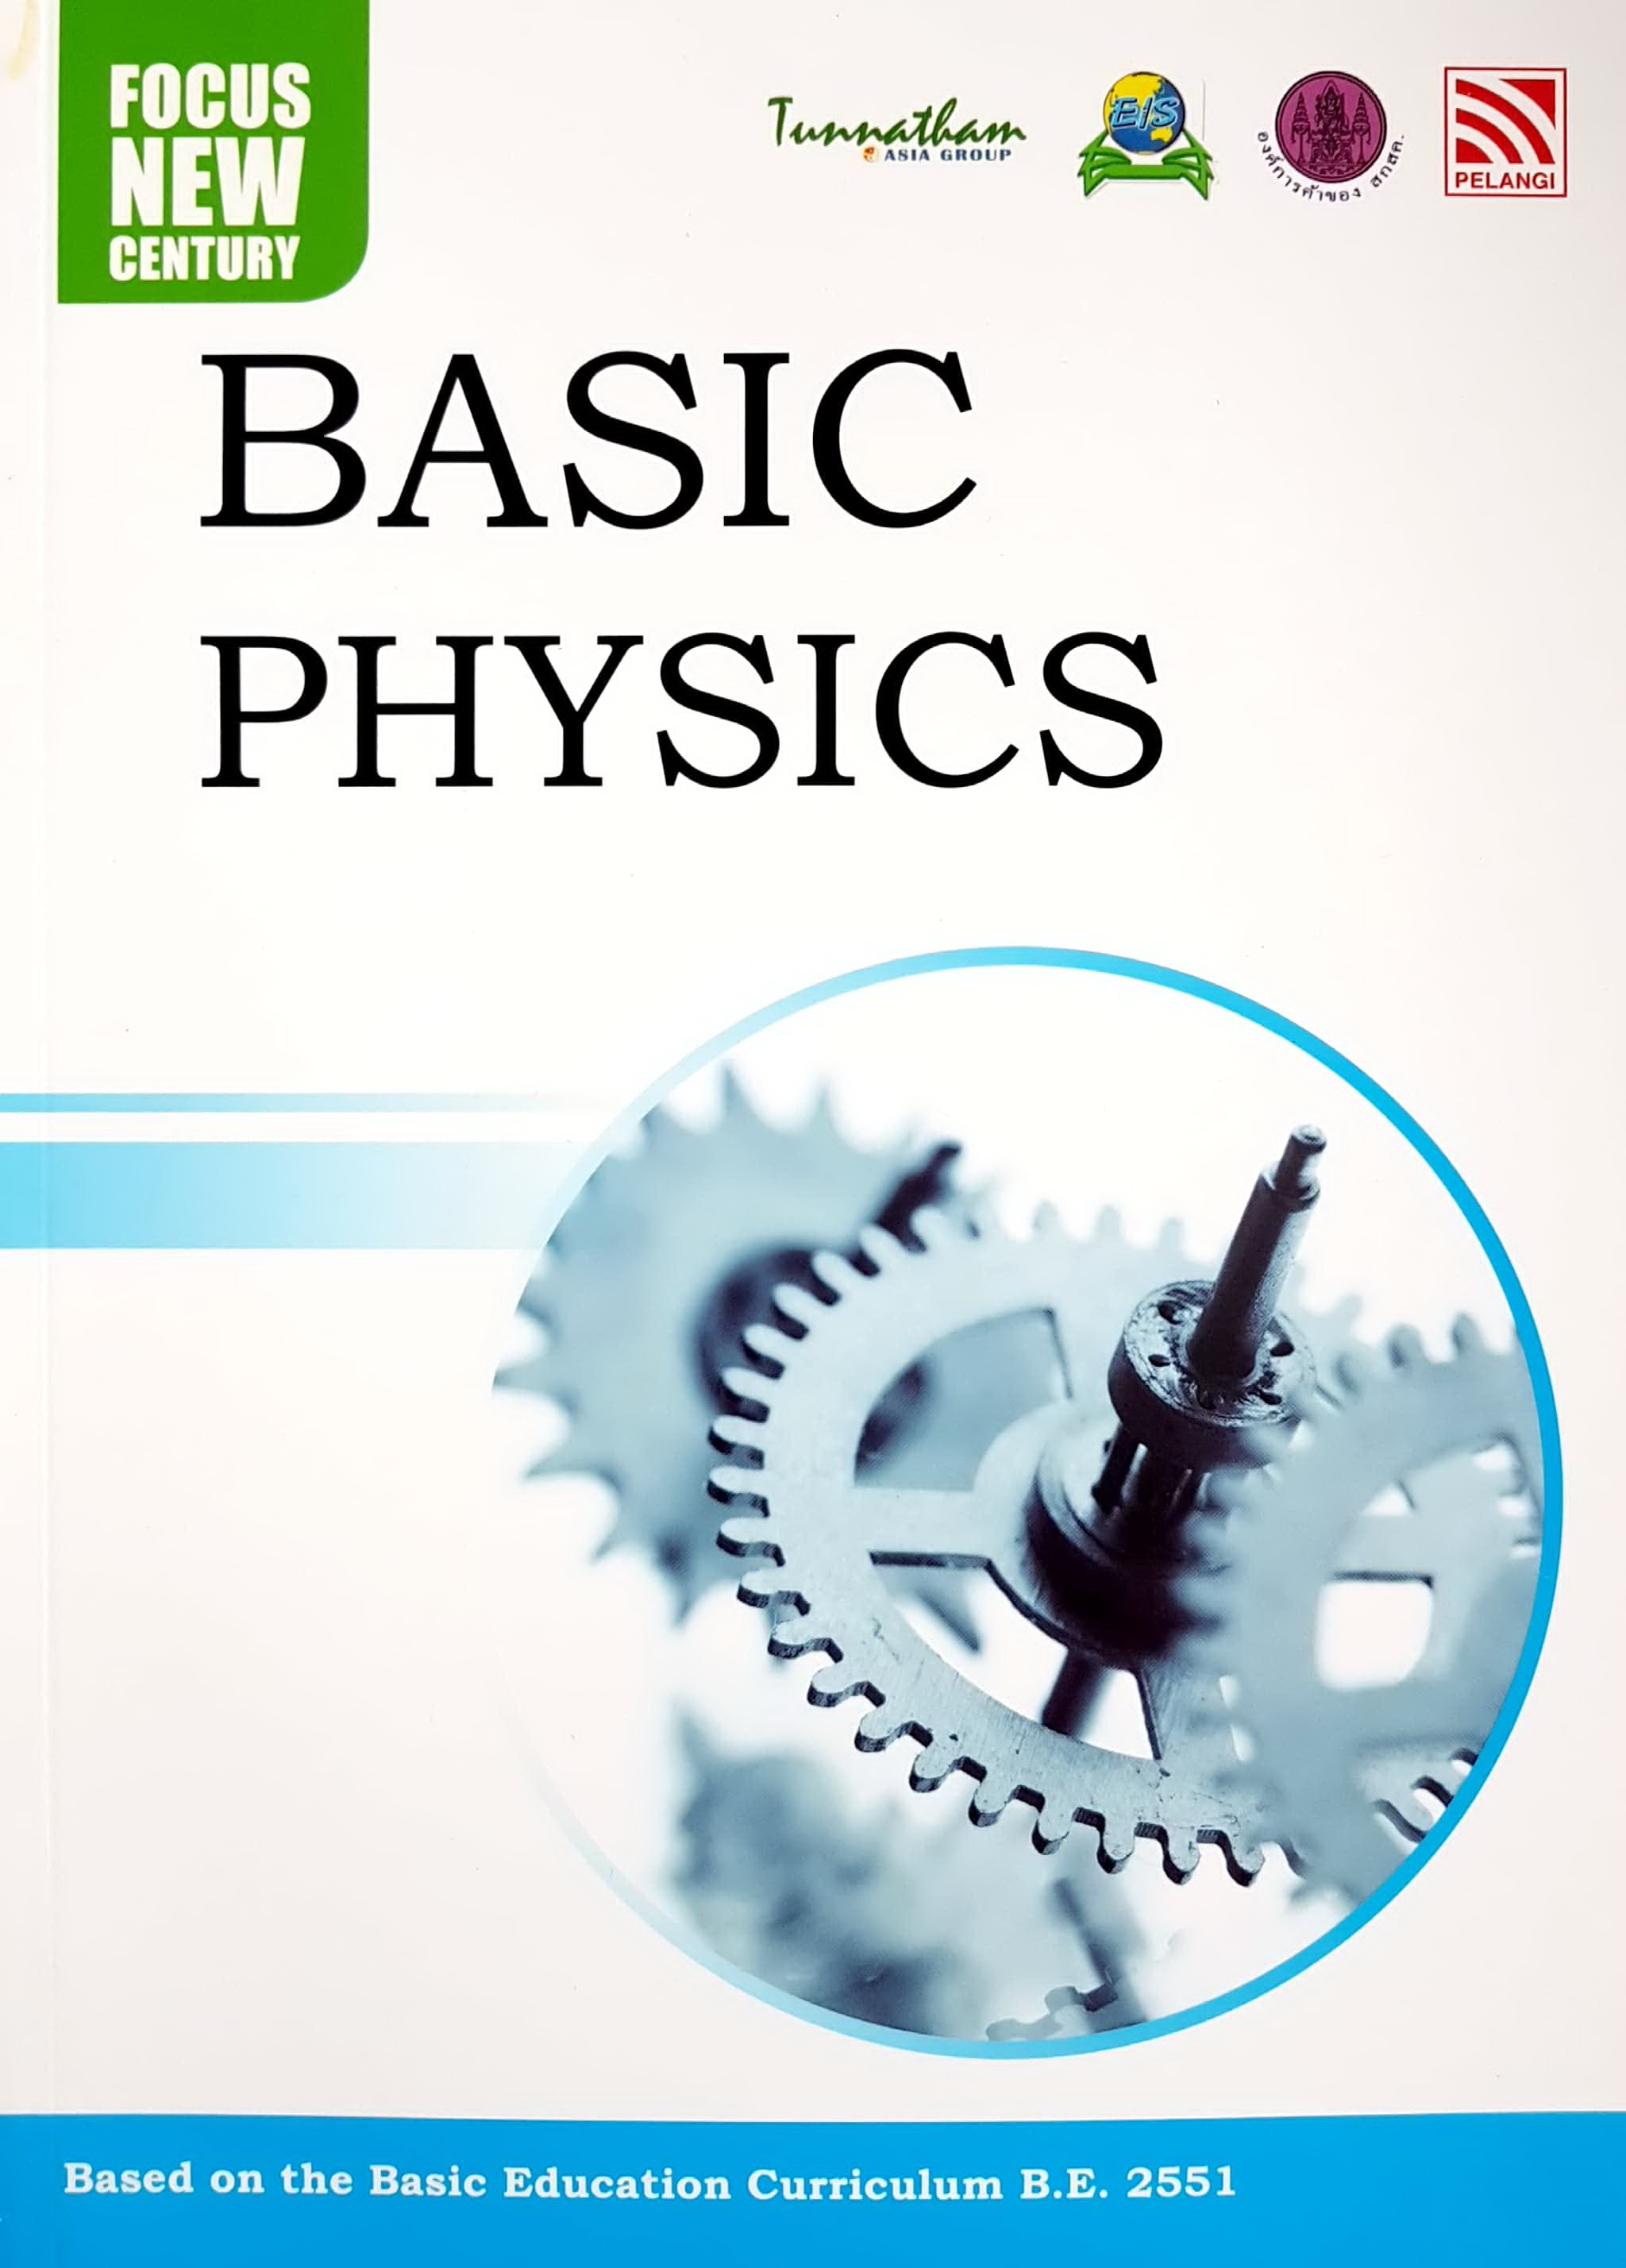 New Century Basic Physics for Secondary 4-6 White Edition